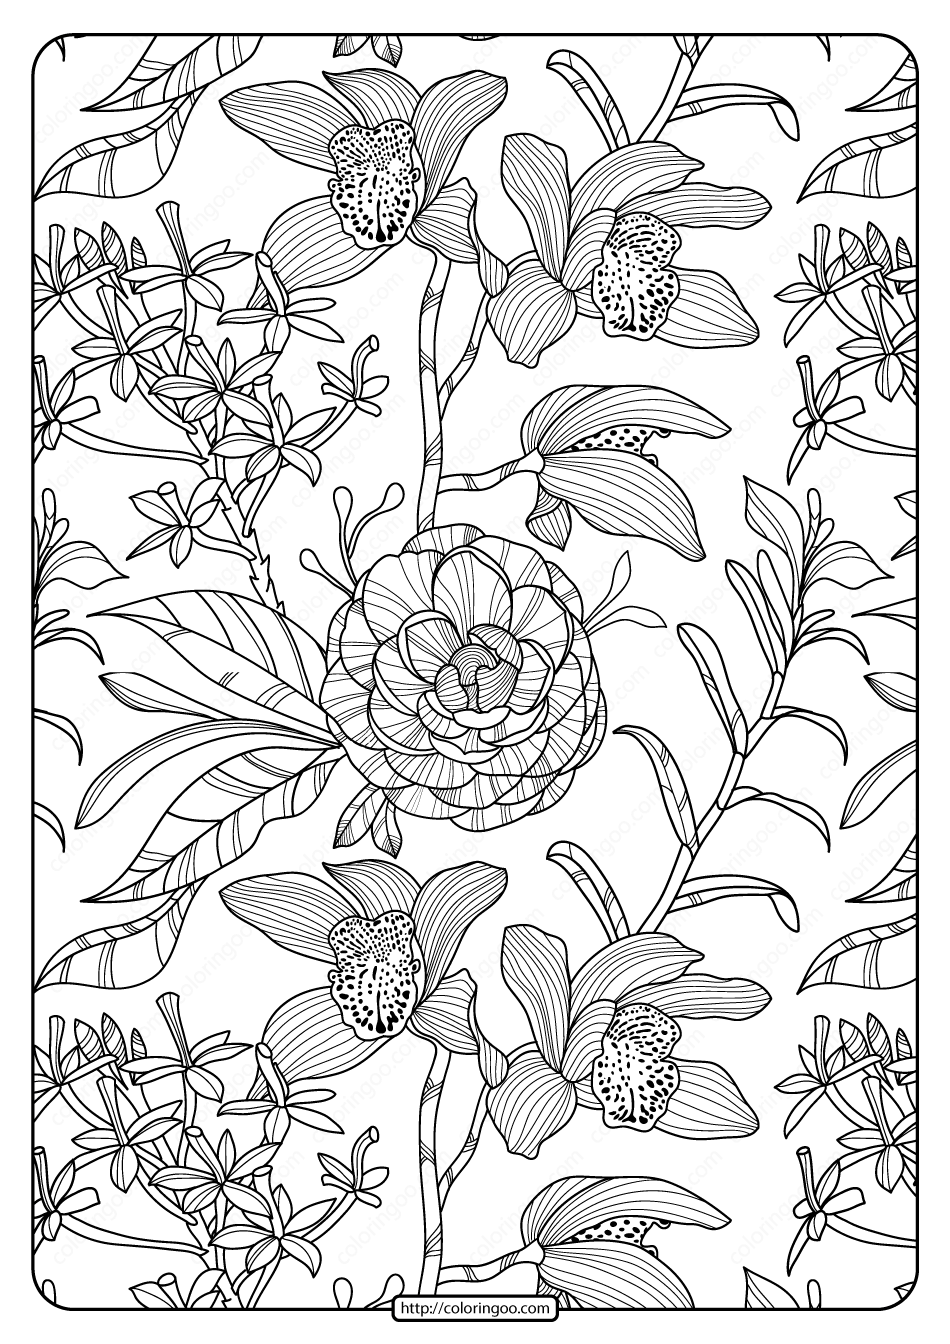 Free Printable Flower Pattern Coloring Page 03